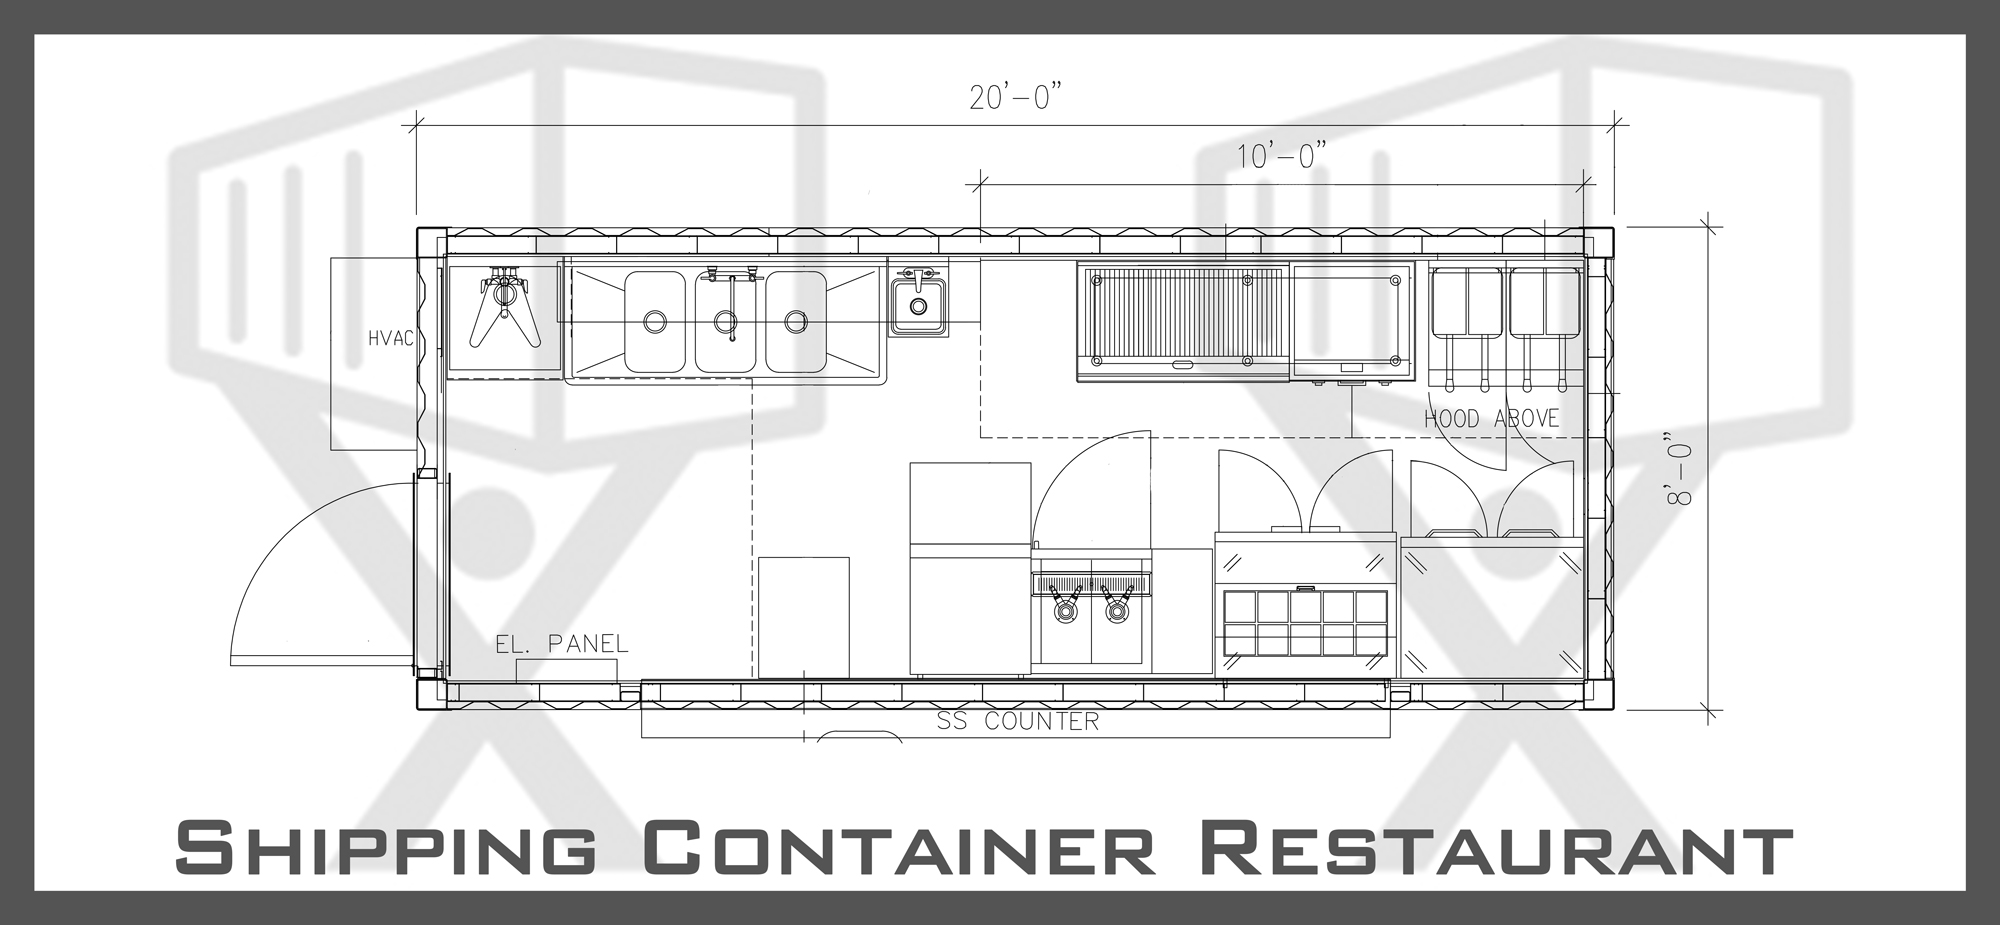 Container Restaurant Floor Plan